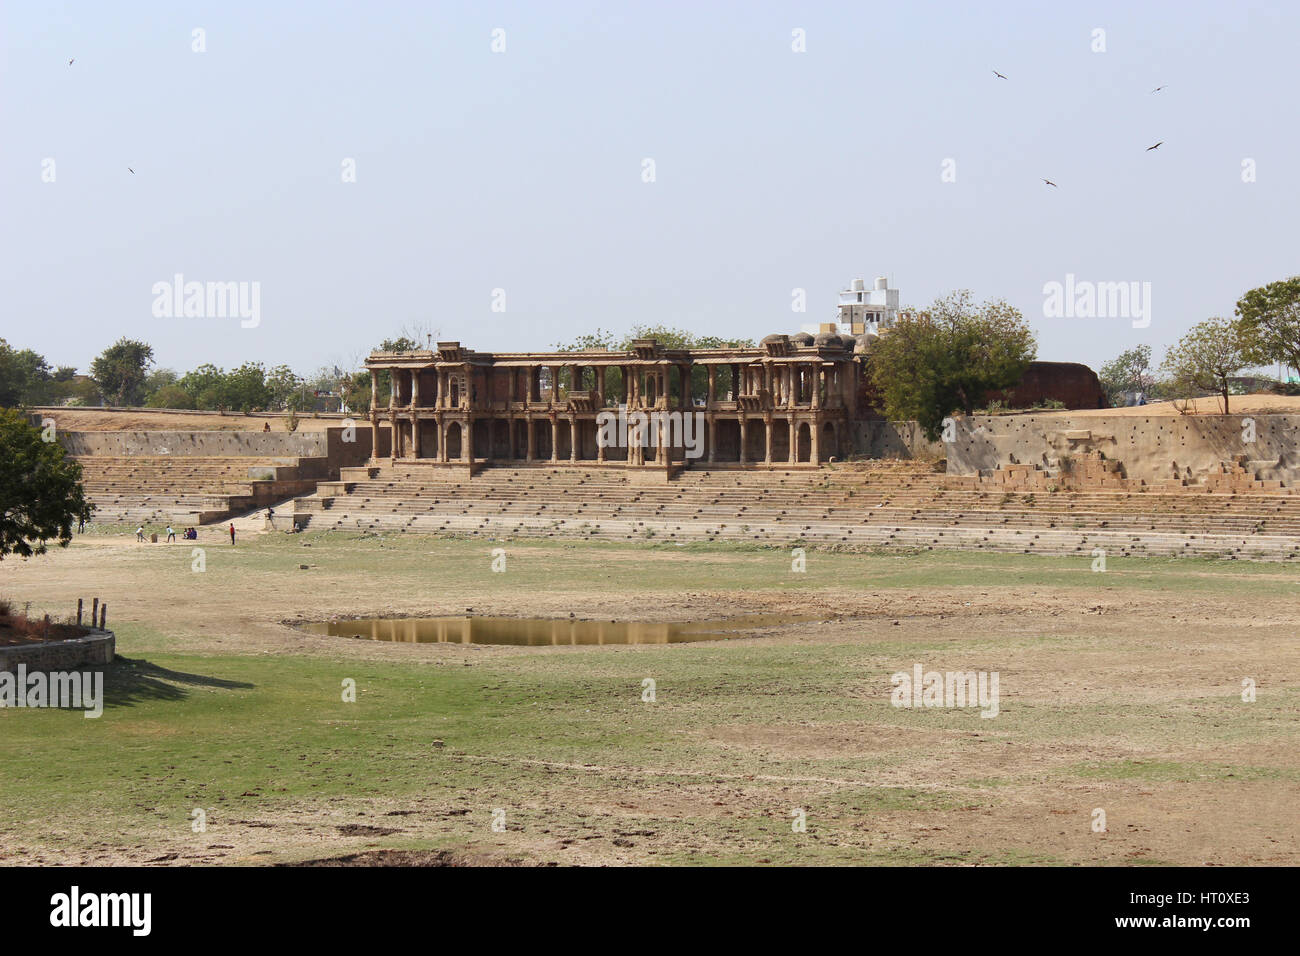 Tombs of the Queens also known as Acropolis of Ahmedabad. Sarkehj Roza, Ahmedabad, Gujarat India - Stock Image